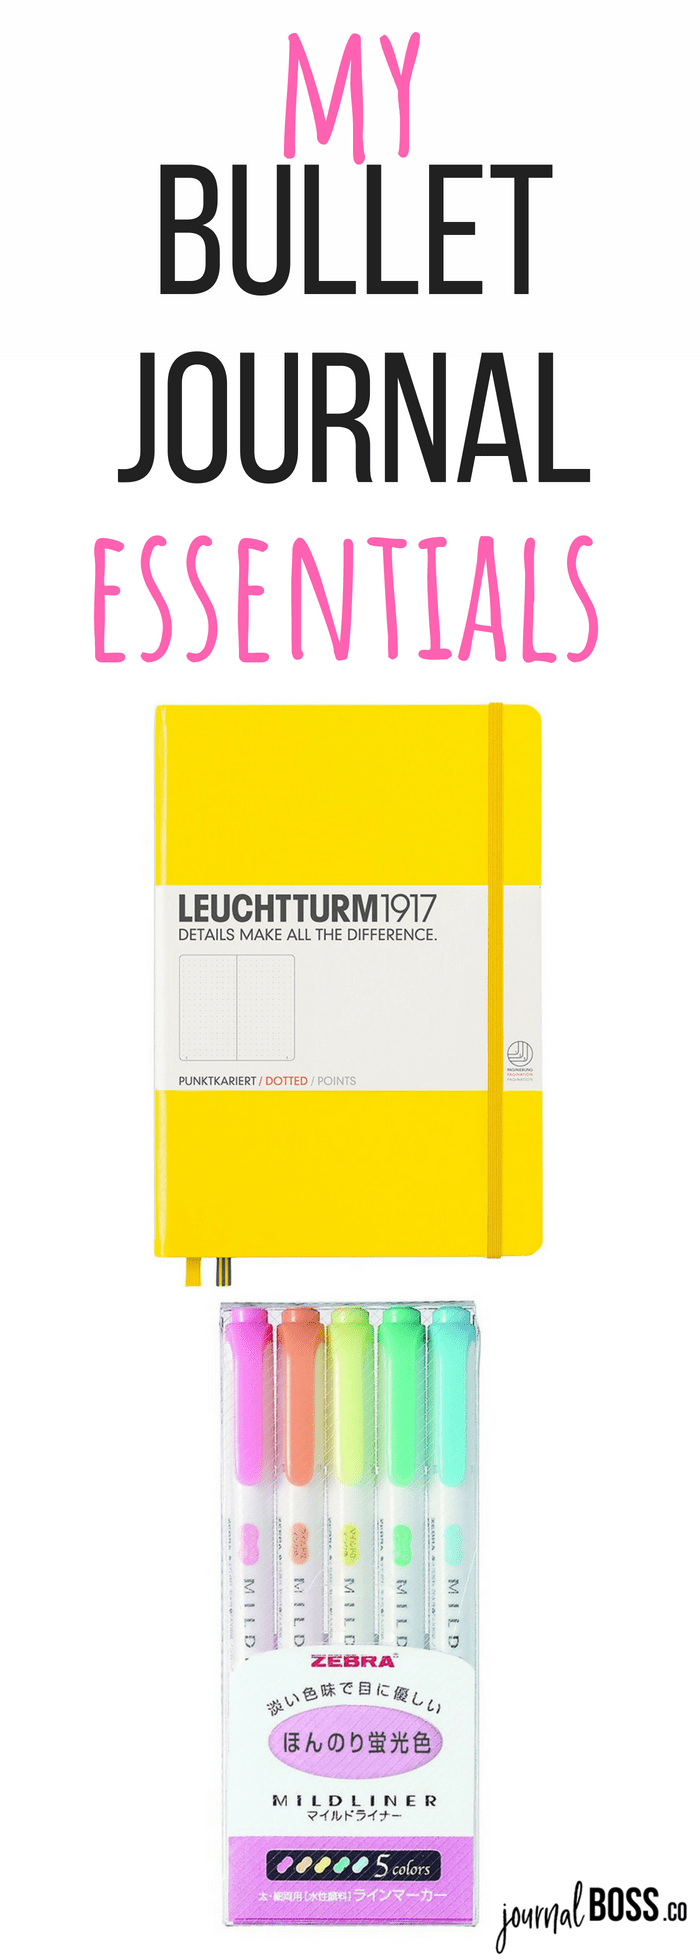 Click through for the best notebooks and pens for your bullet journal! Bujo fans, do you agree with my list of essentials??